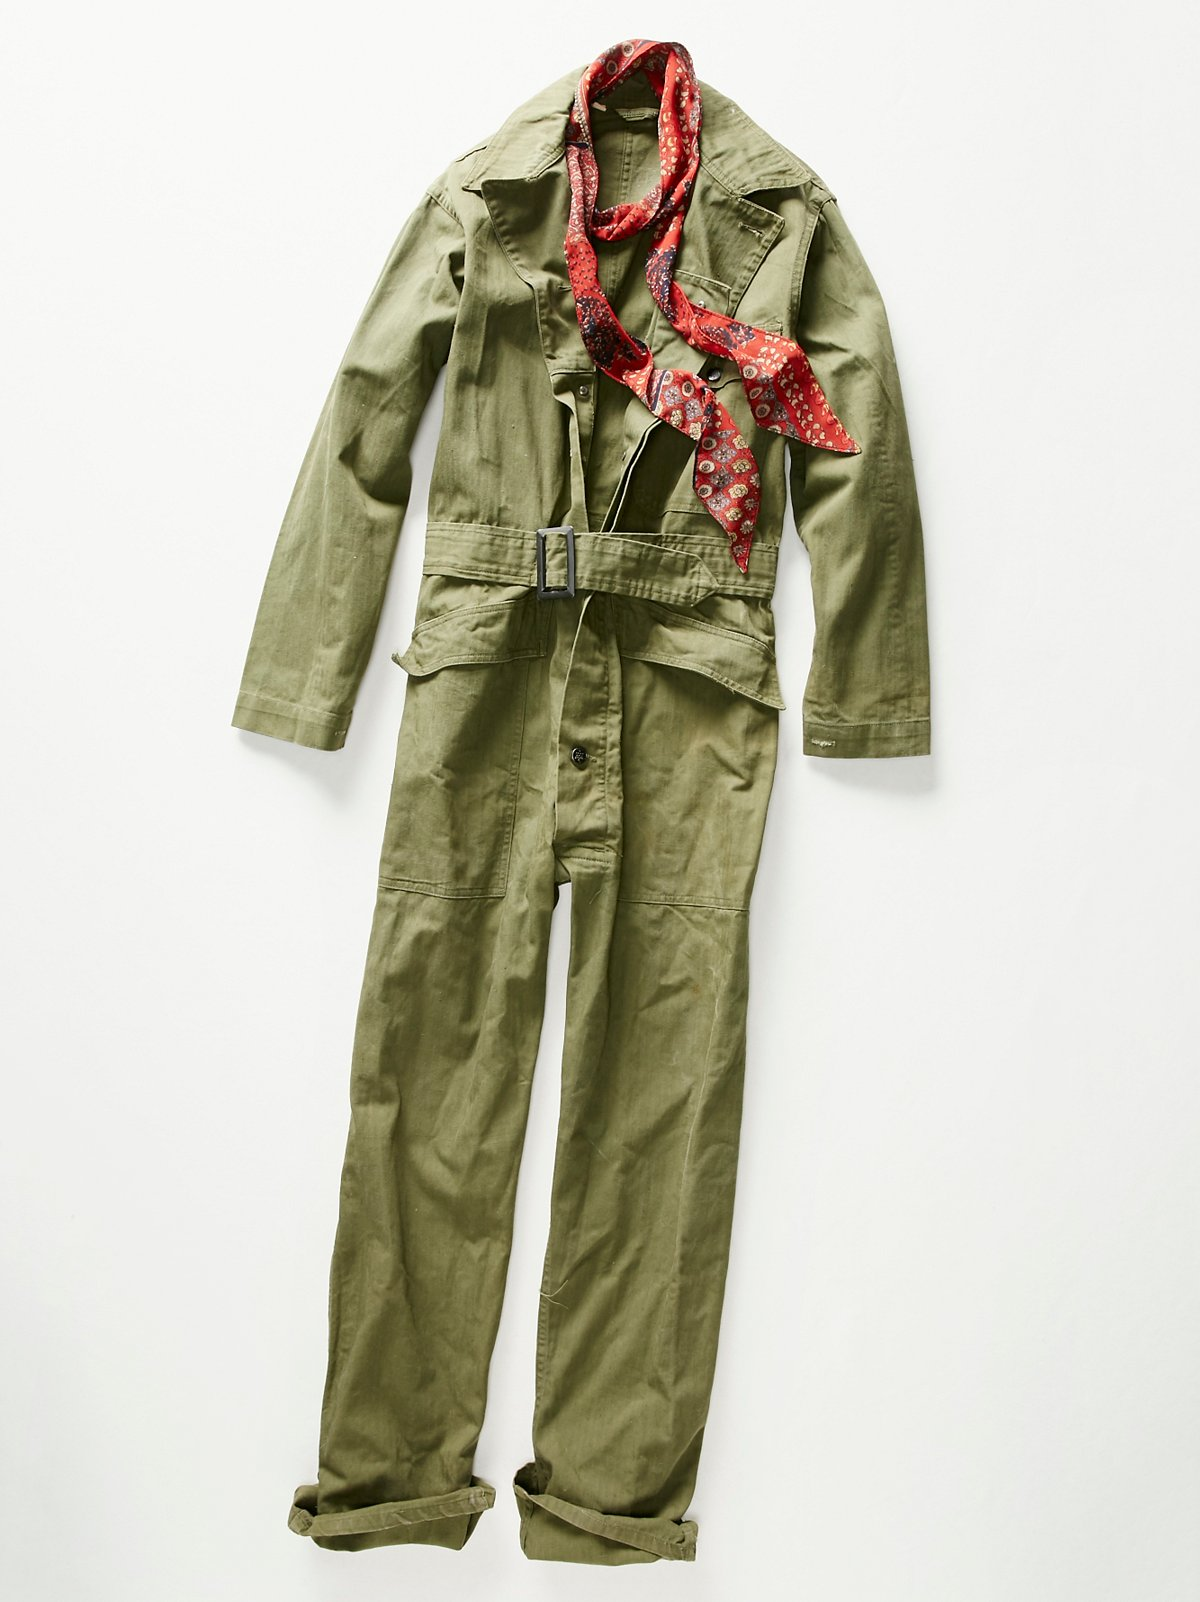 Vintage 1940s Military Coveralls